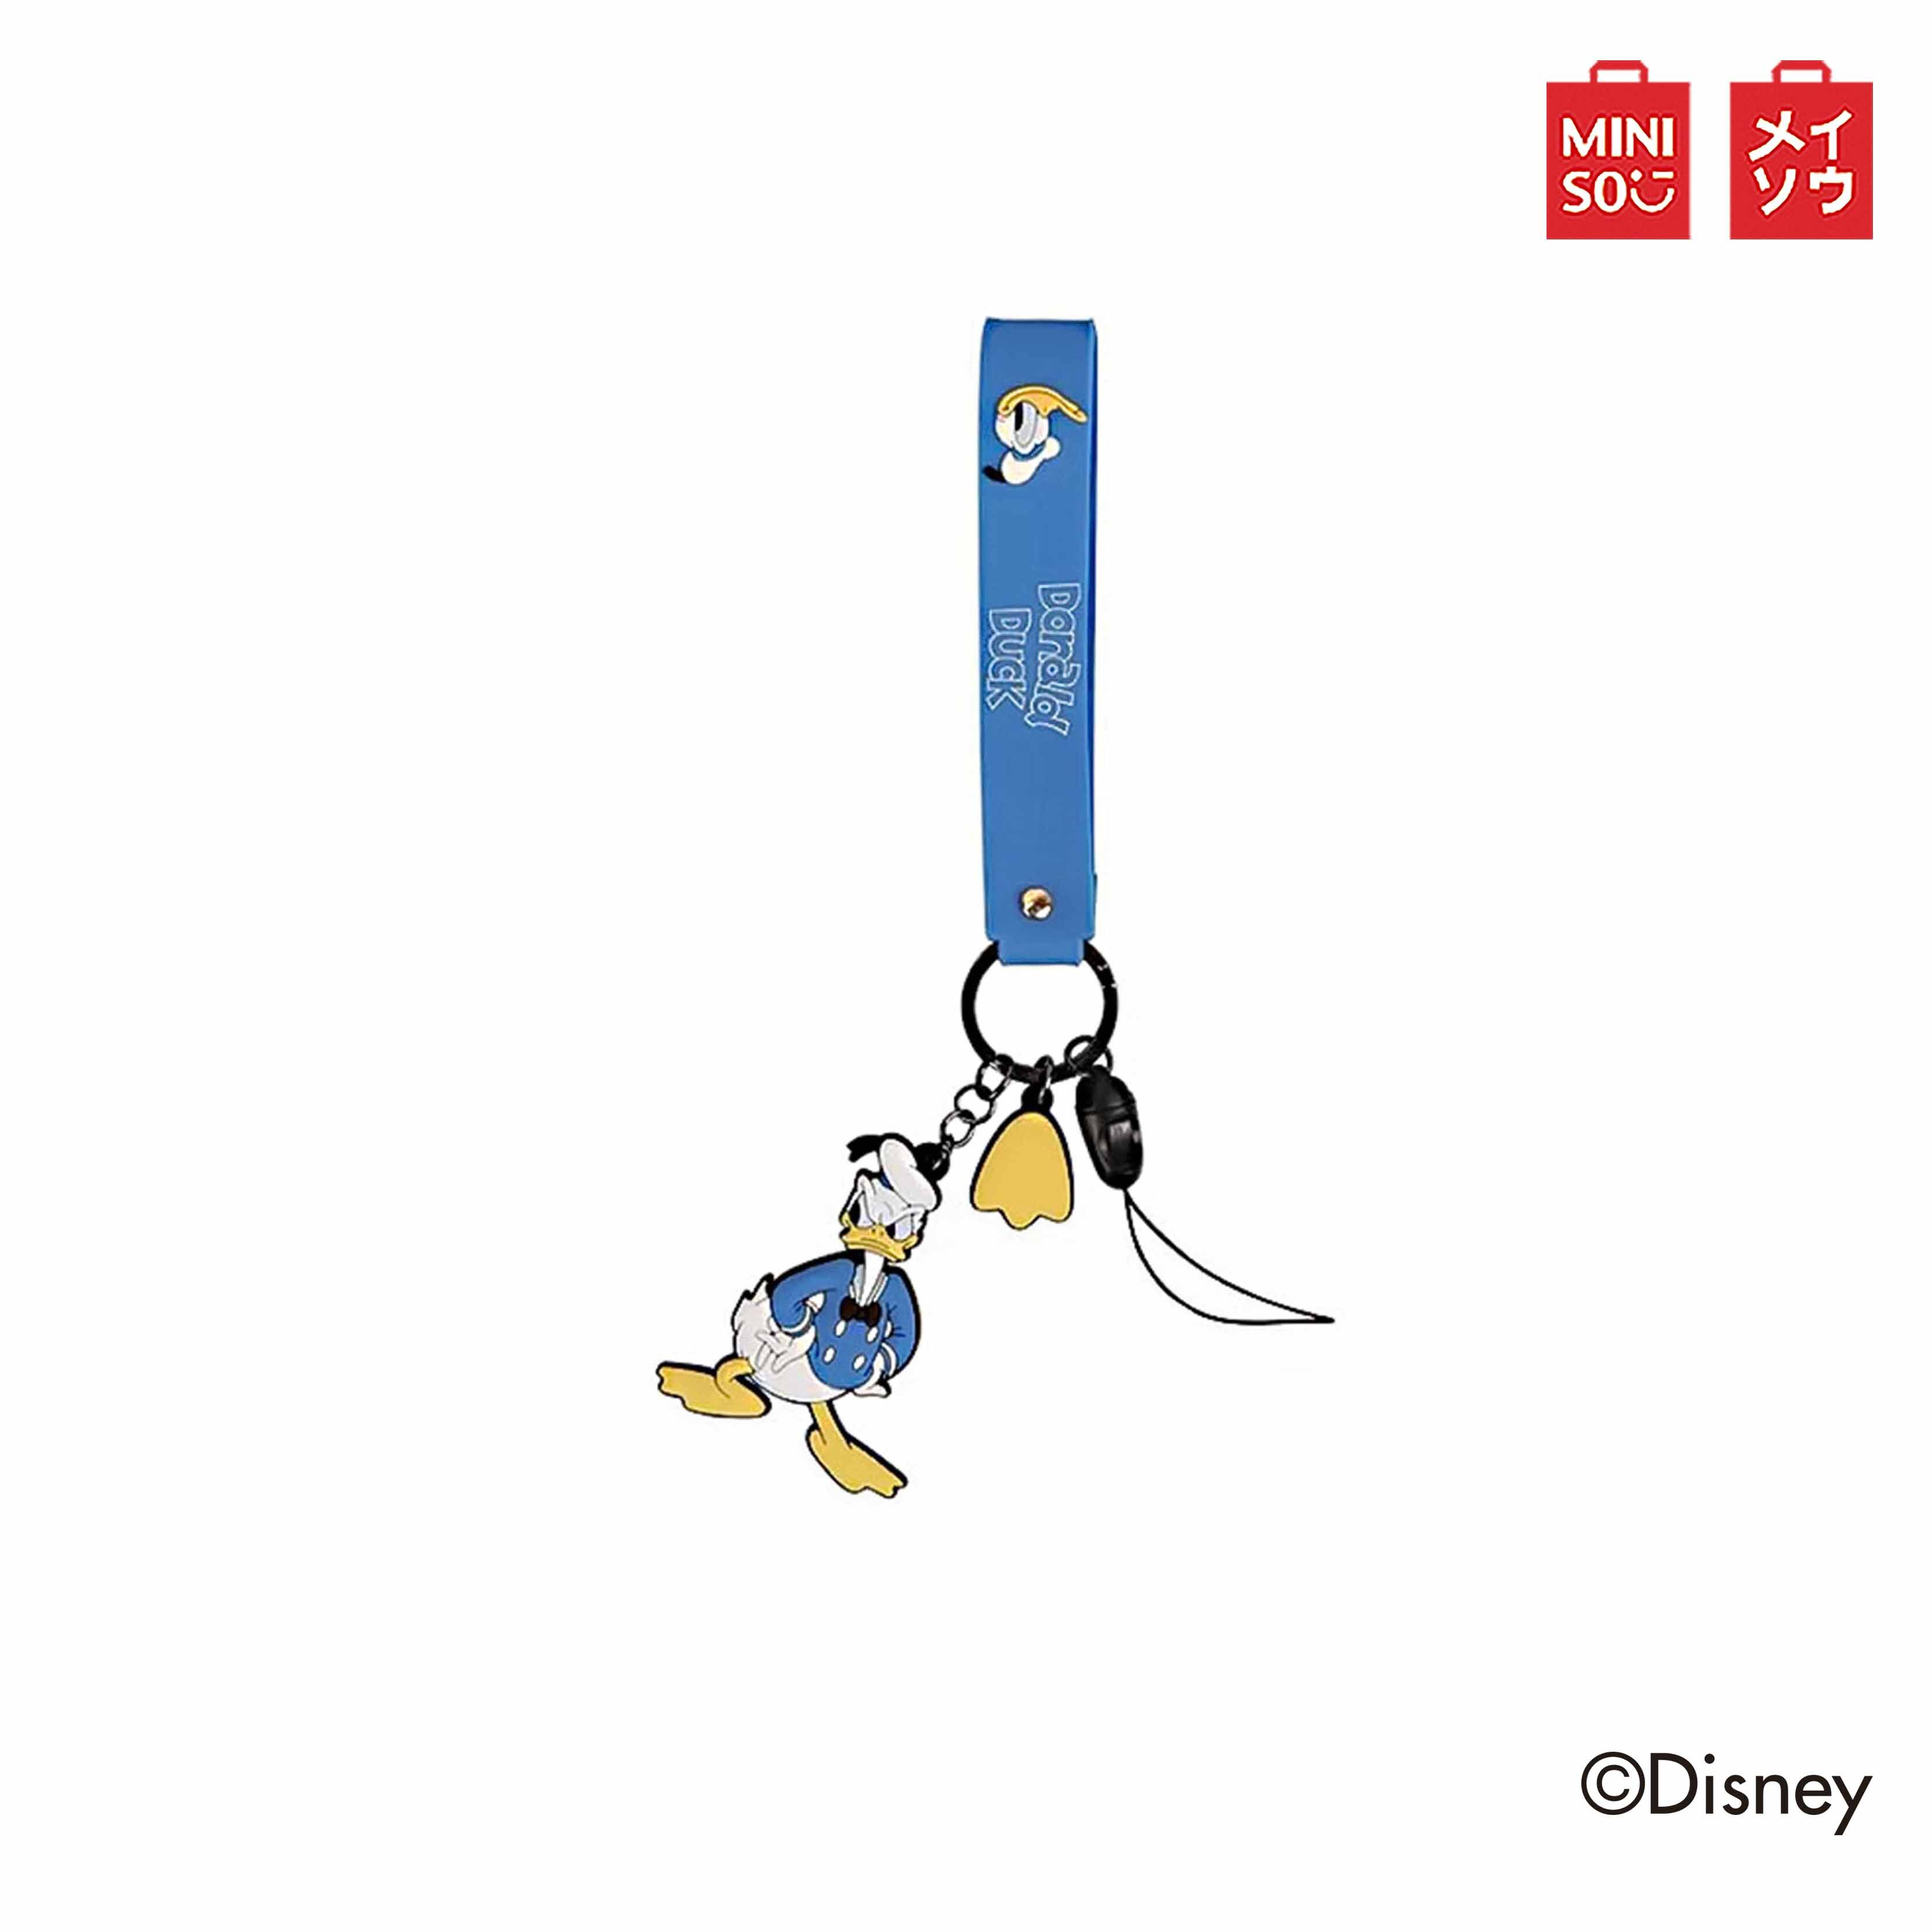 MINISO ที่ห้อยกระเป๋า โทรศัพท์มือถือ Mickey Mouse Family Collection